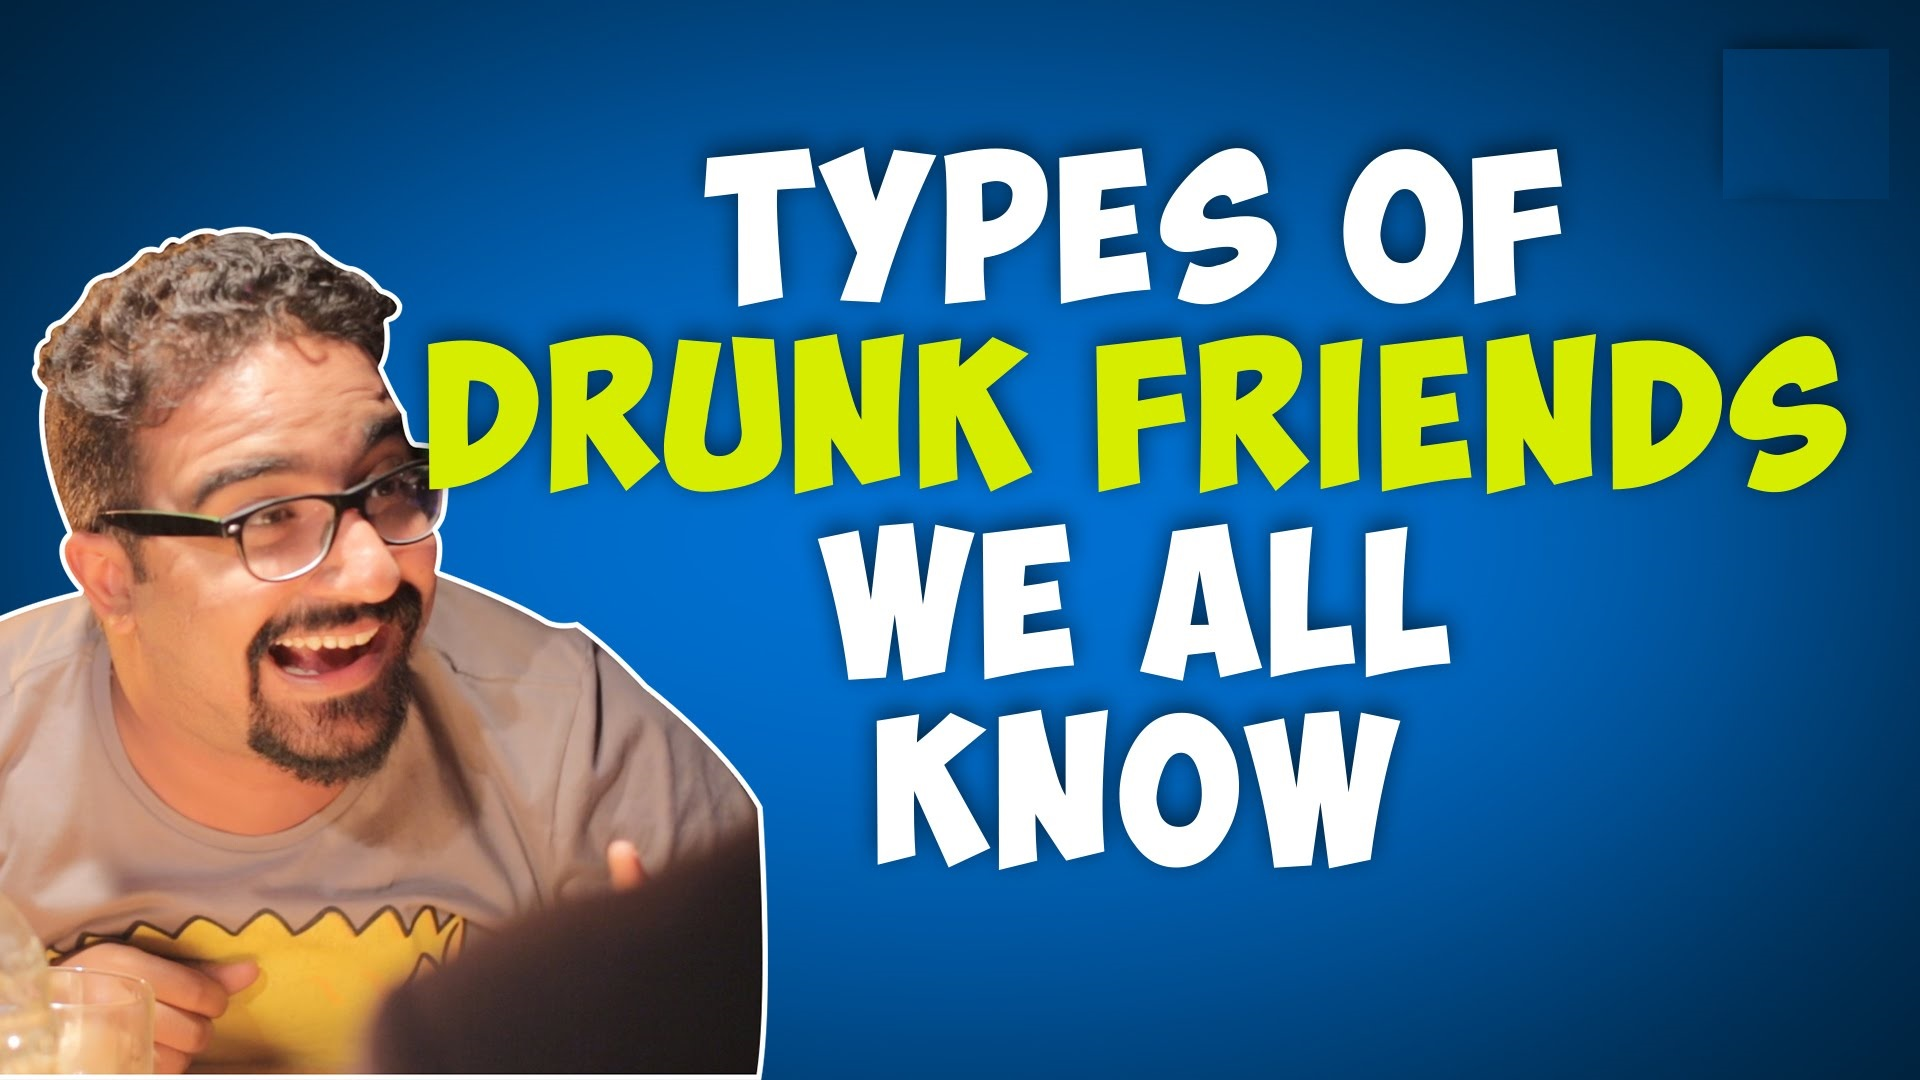 types of drunk friends